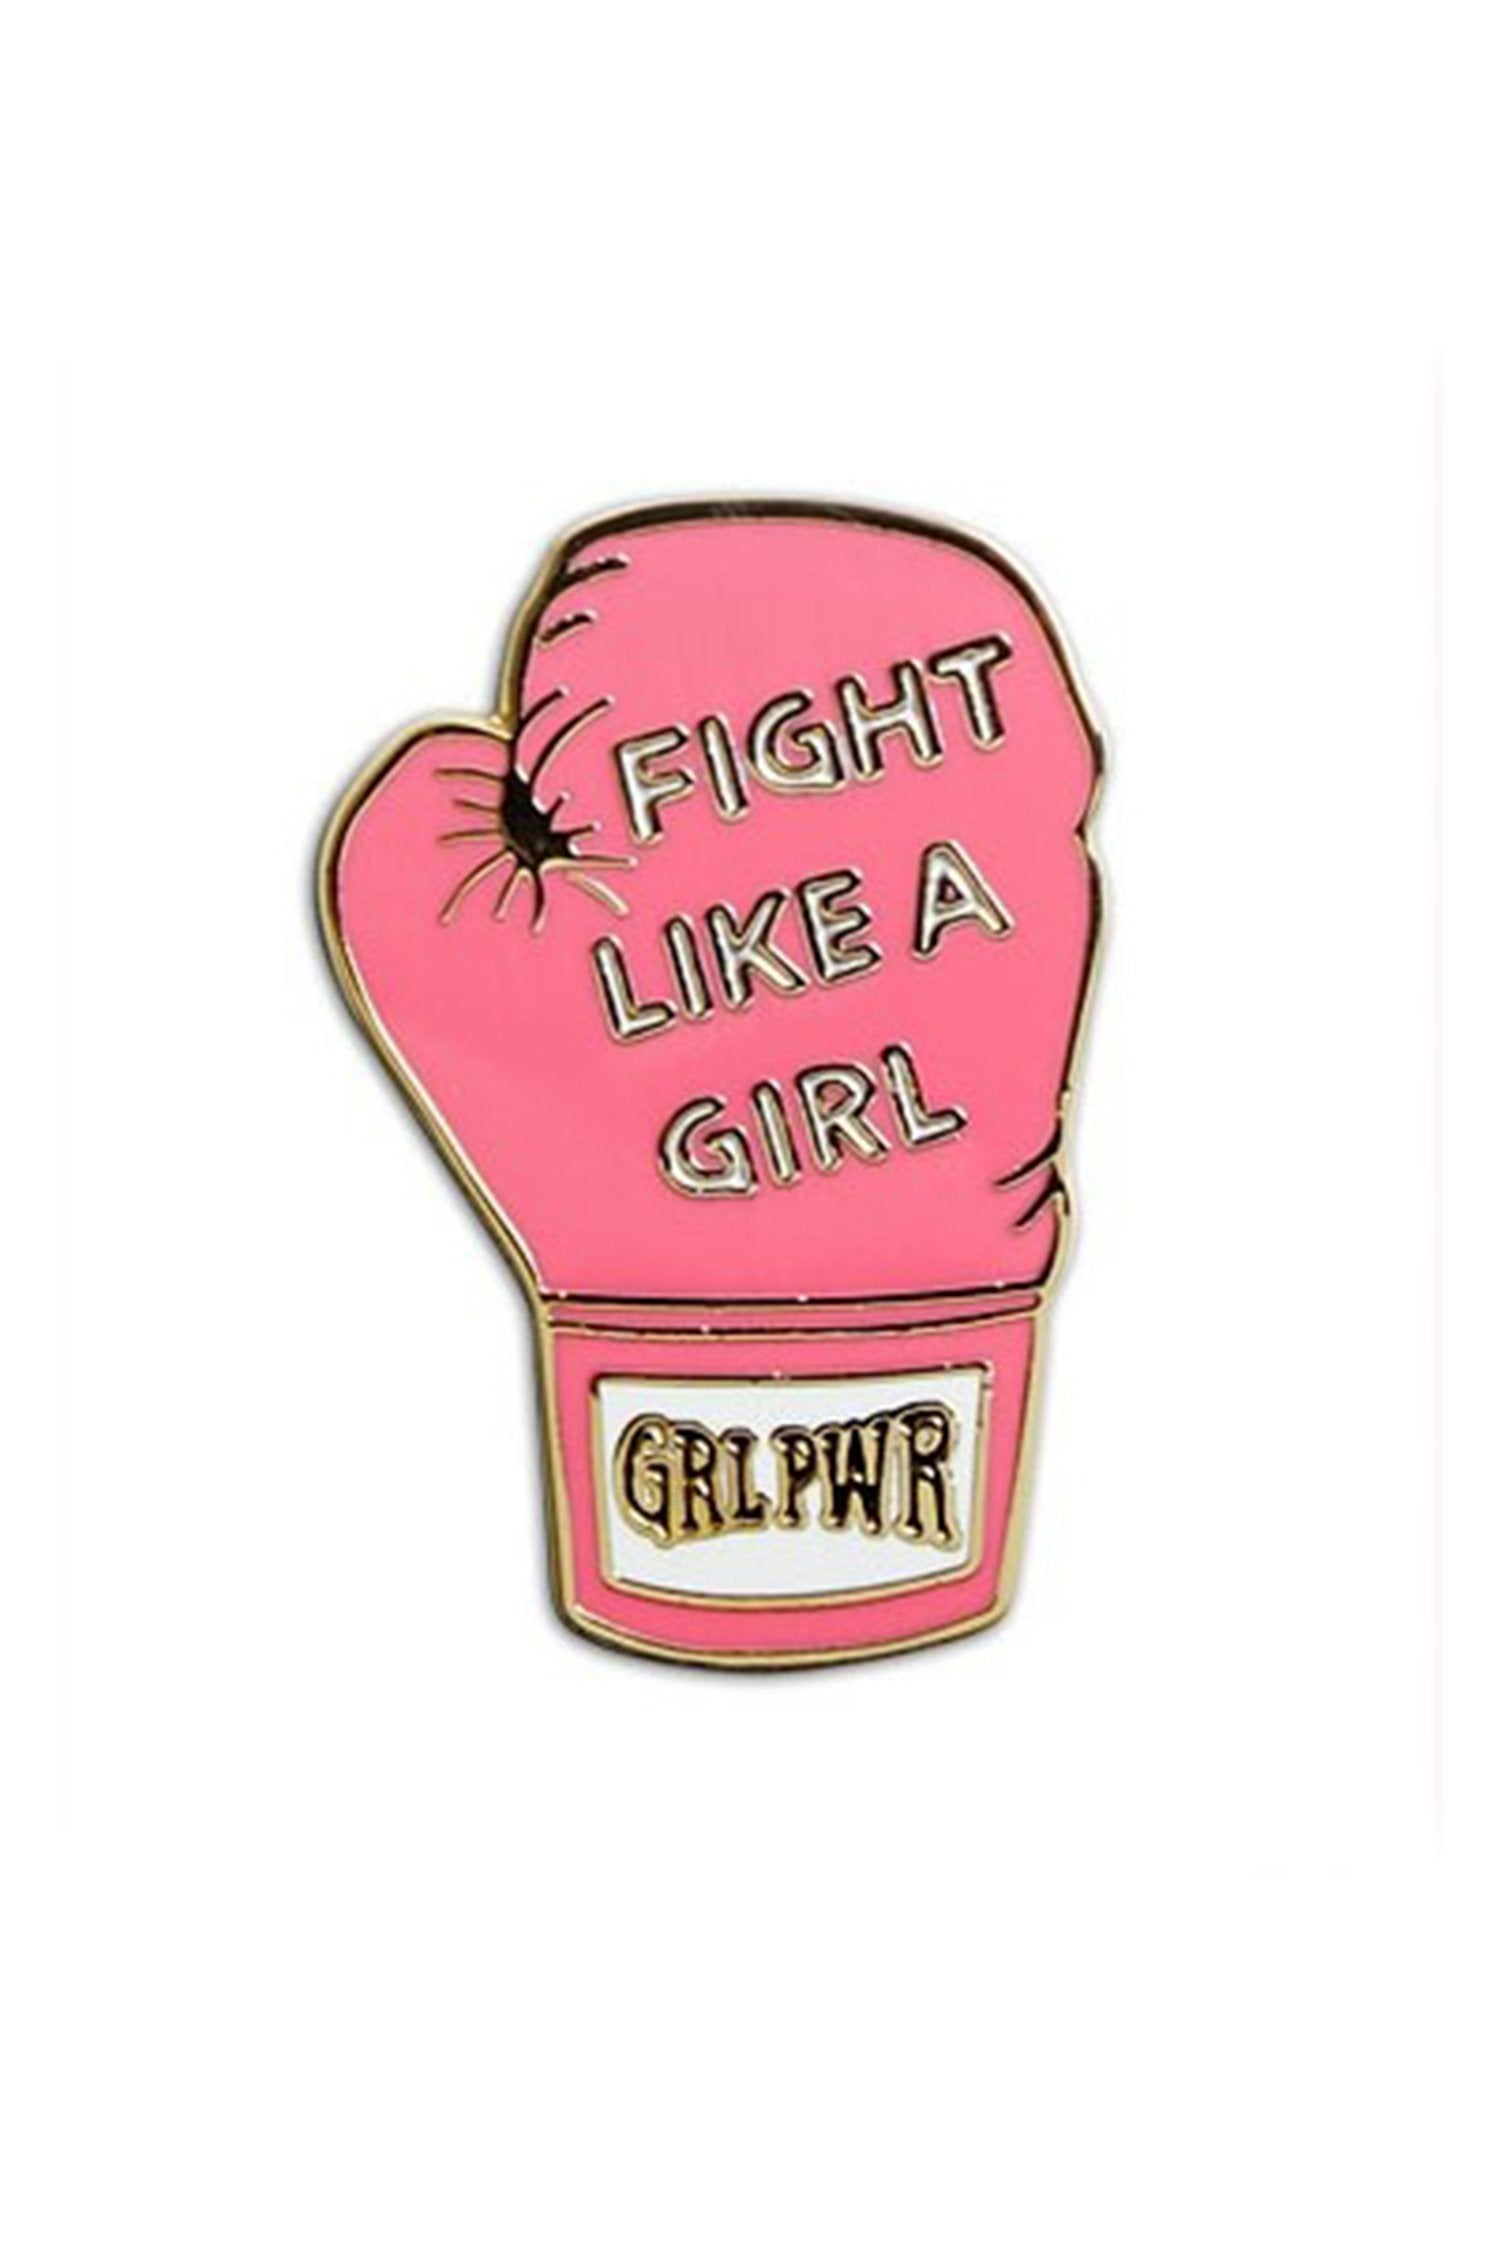 The Found Enamel Pin Fight Like a Girl